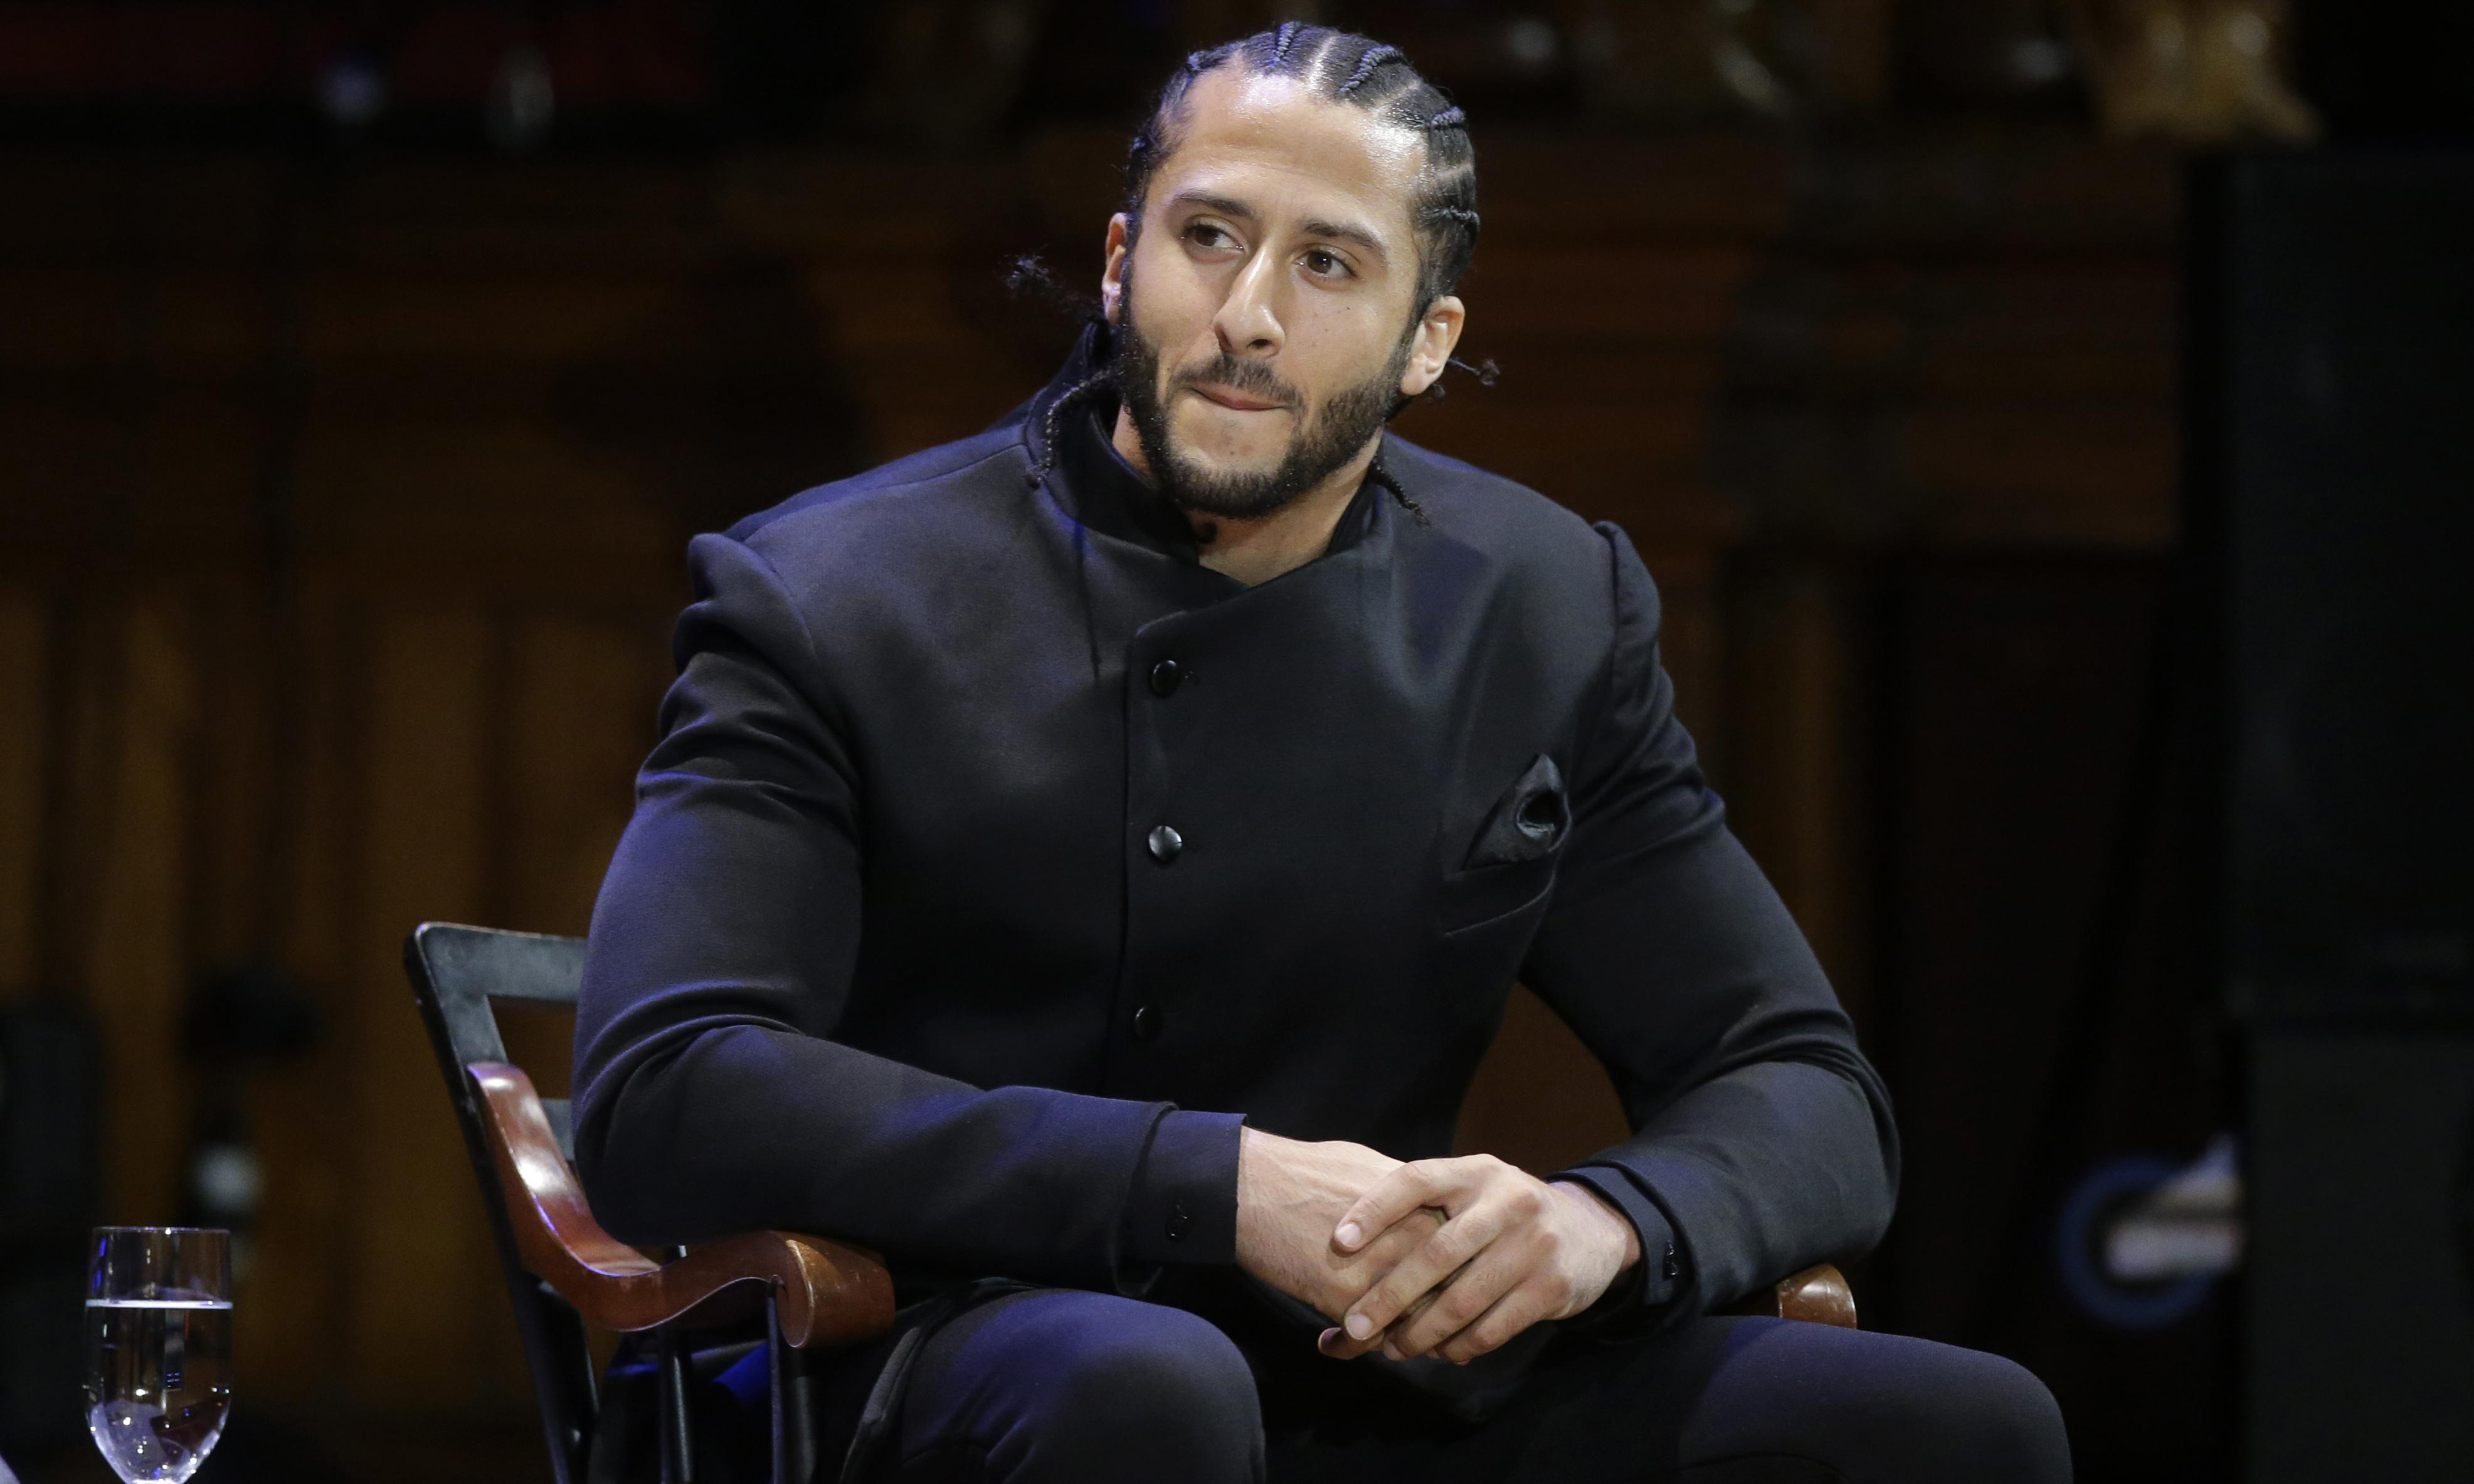 Colin Kaepernick's settlement with NFL reportedly worth less than $10m